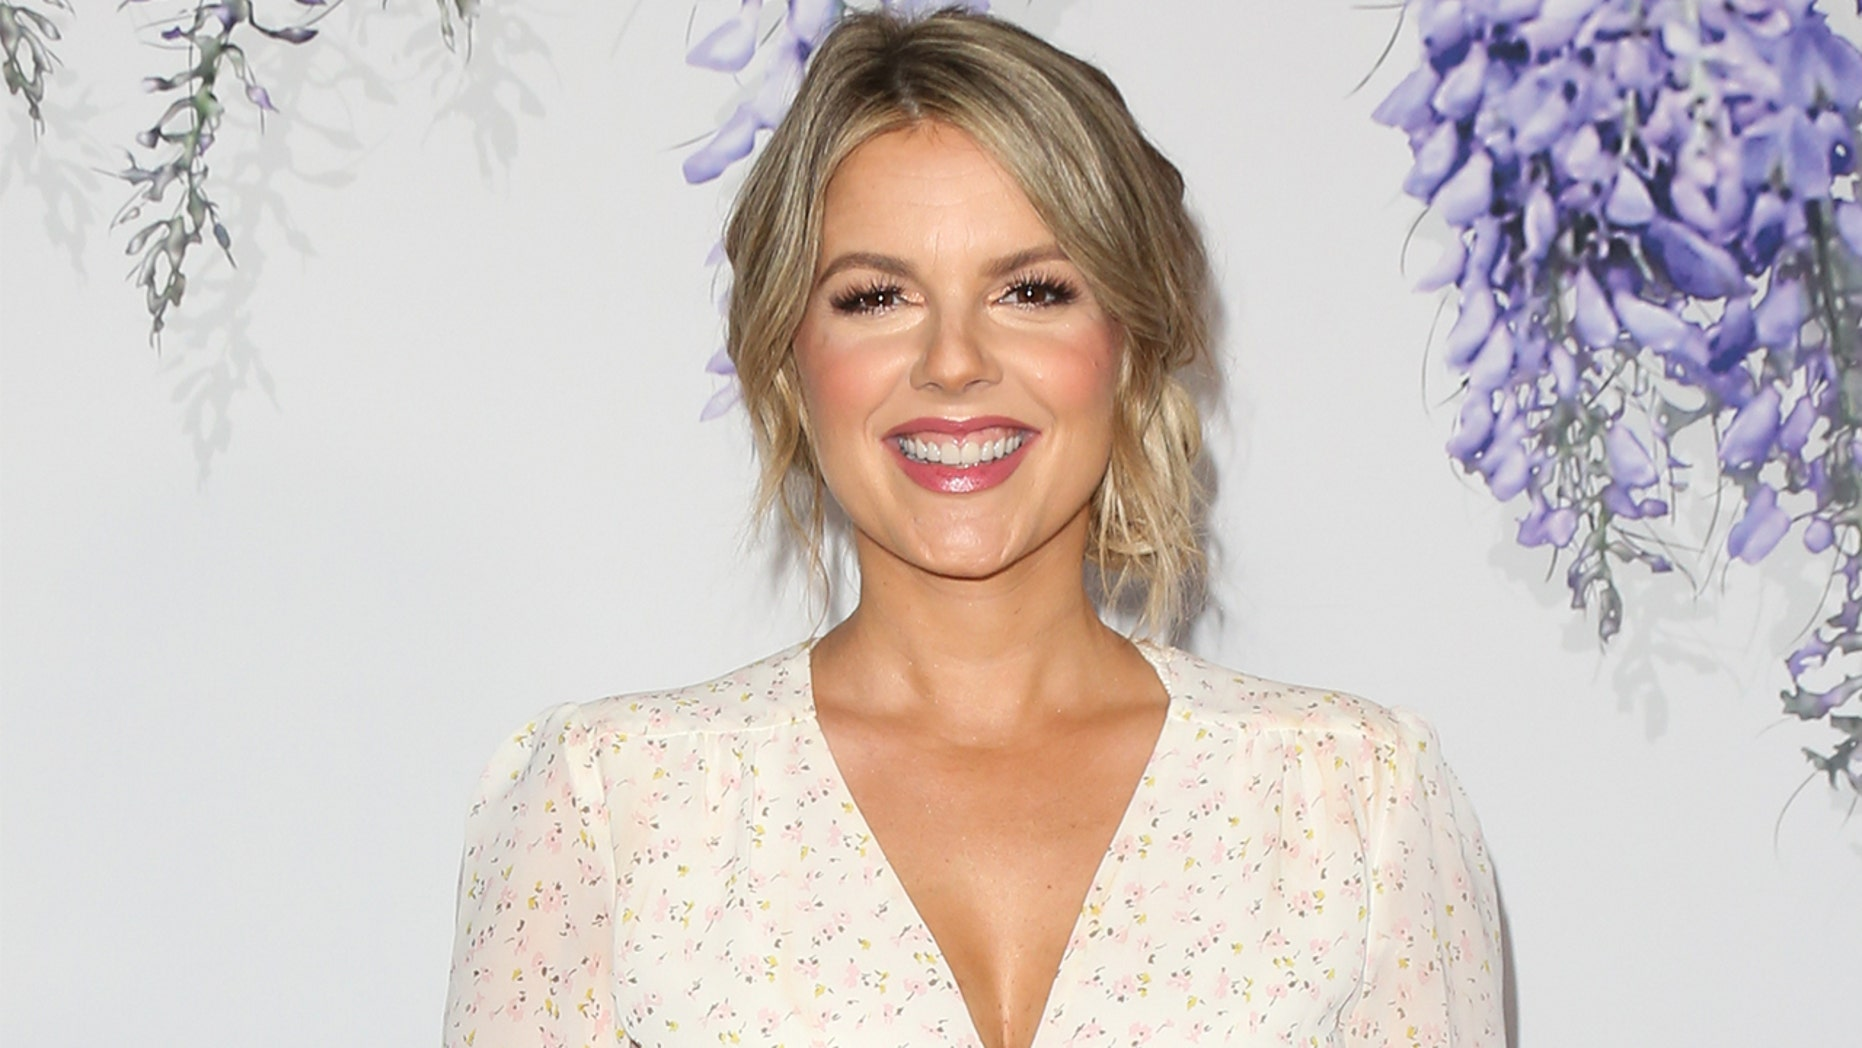 Ali Fedotowsky got candid with Fox News about her life as a new mom of two.